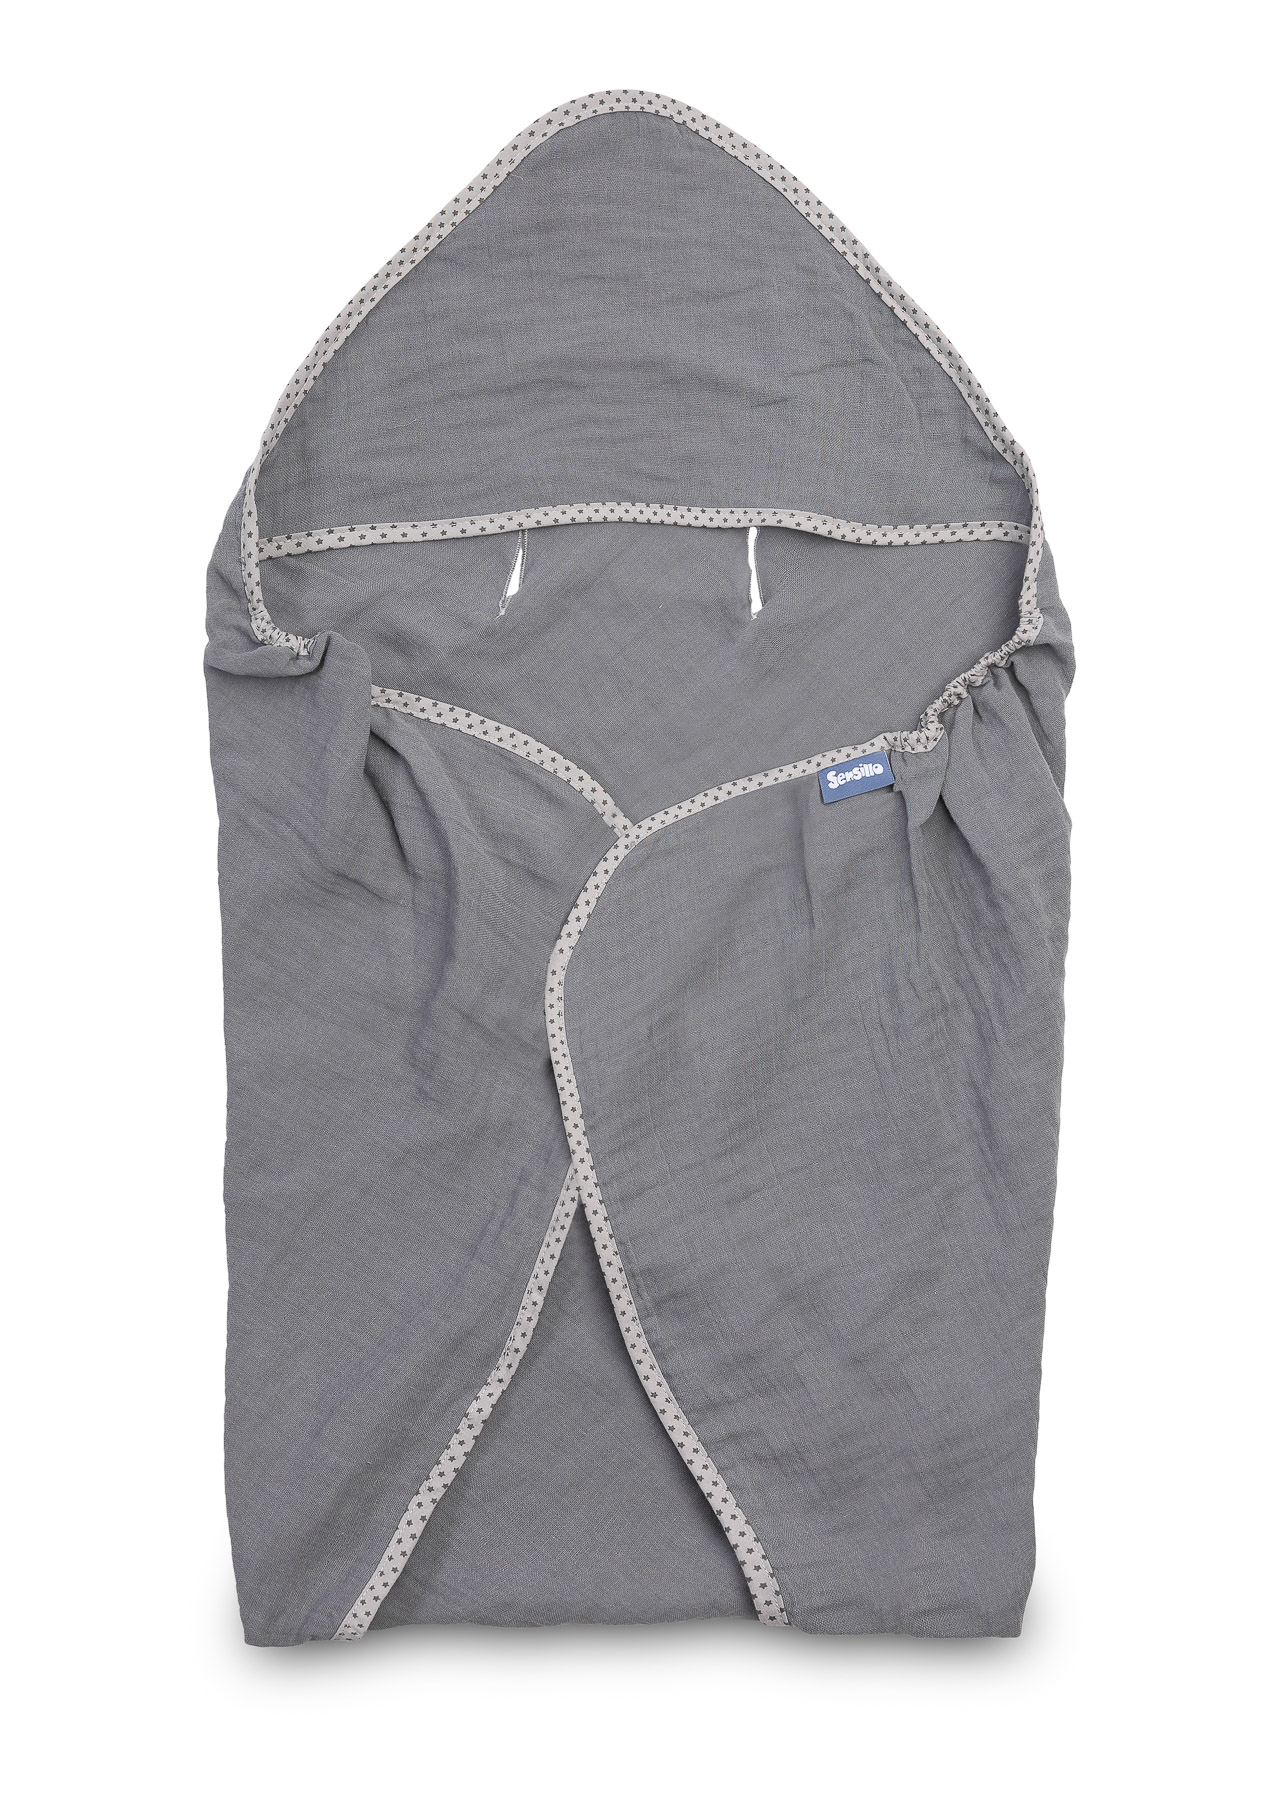 Child seat muslin swaddle blanket for summer – graphite